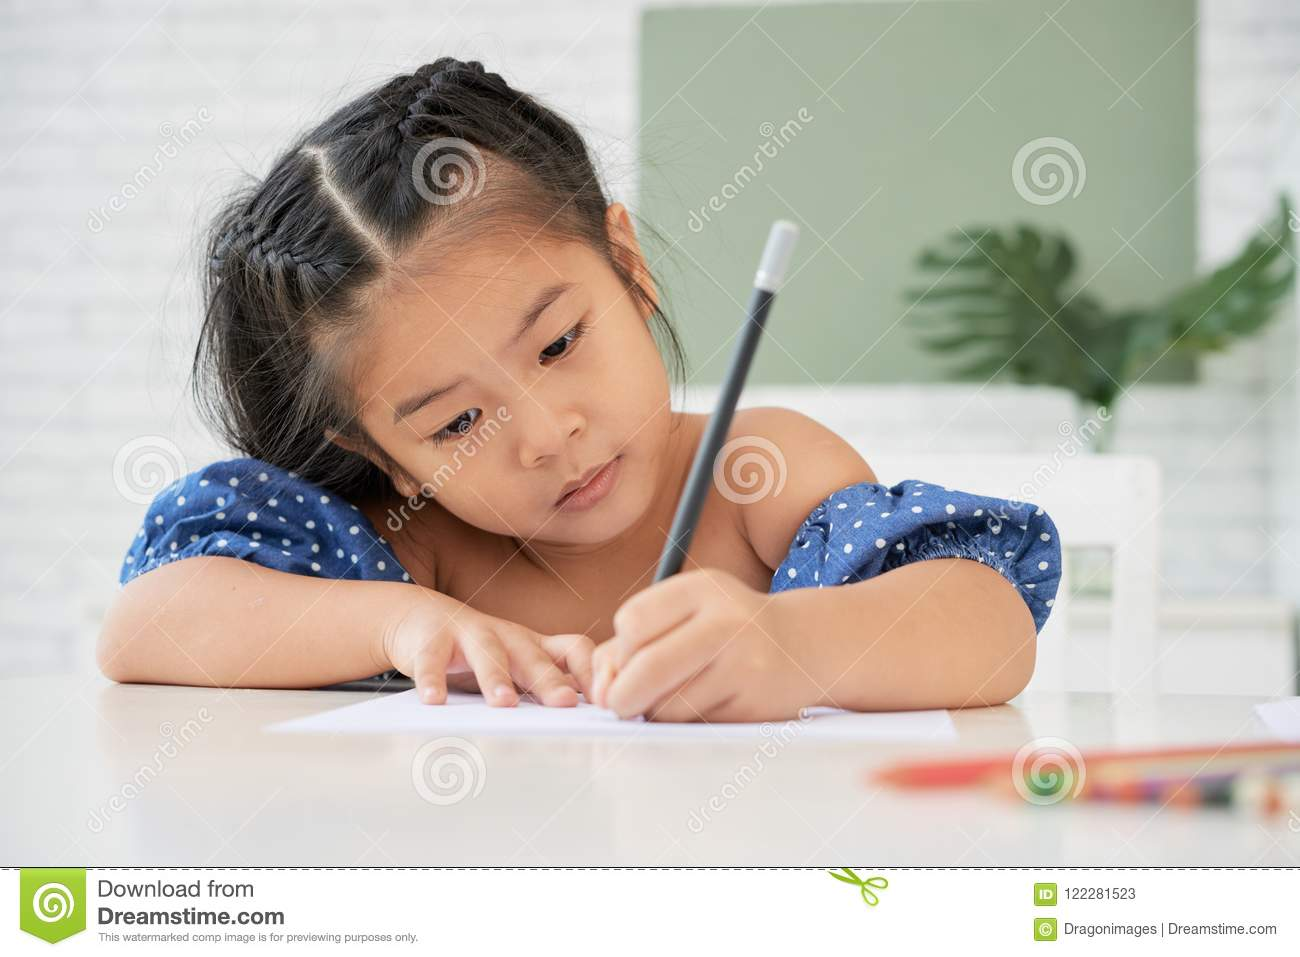 Concentrated Girl Drawing With Pencil Stock Image Image Of